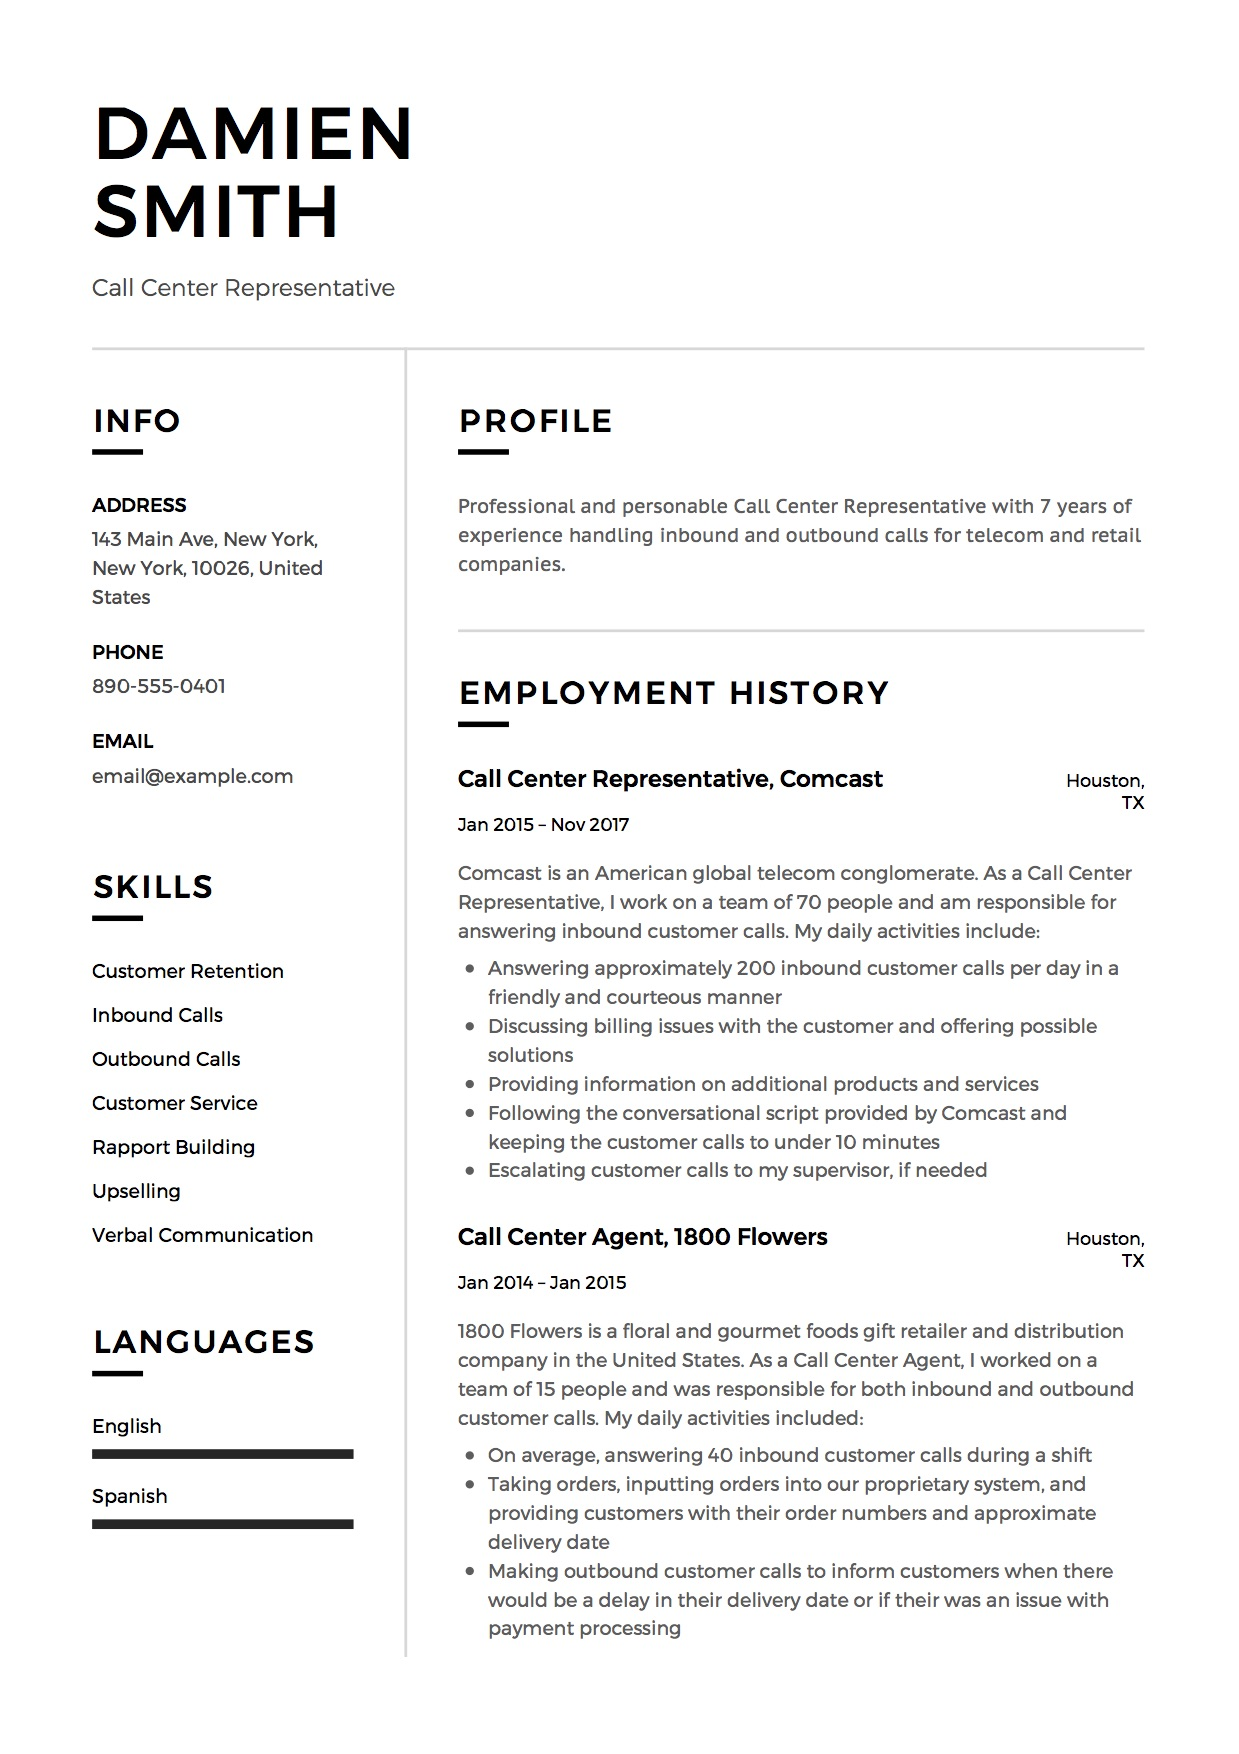 call center resume guide free downloads template for agent damien representative brand Resume Resume Template For Call Center Agent